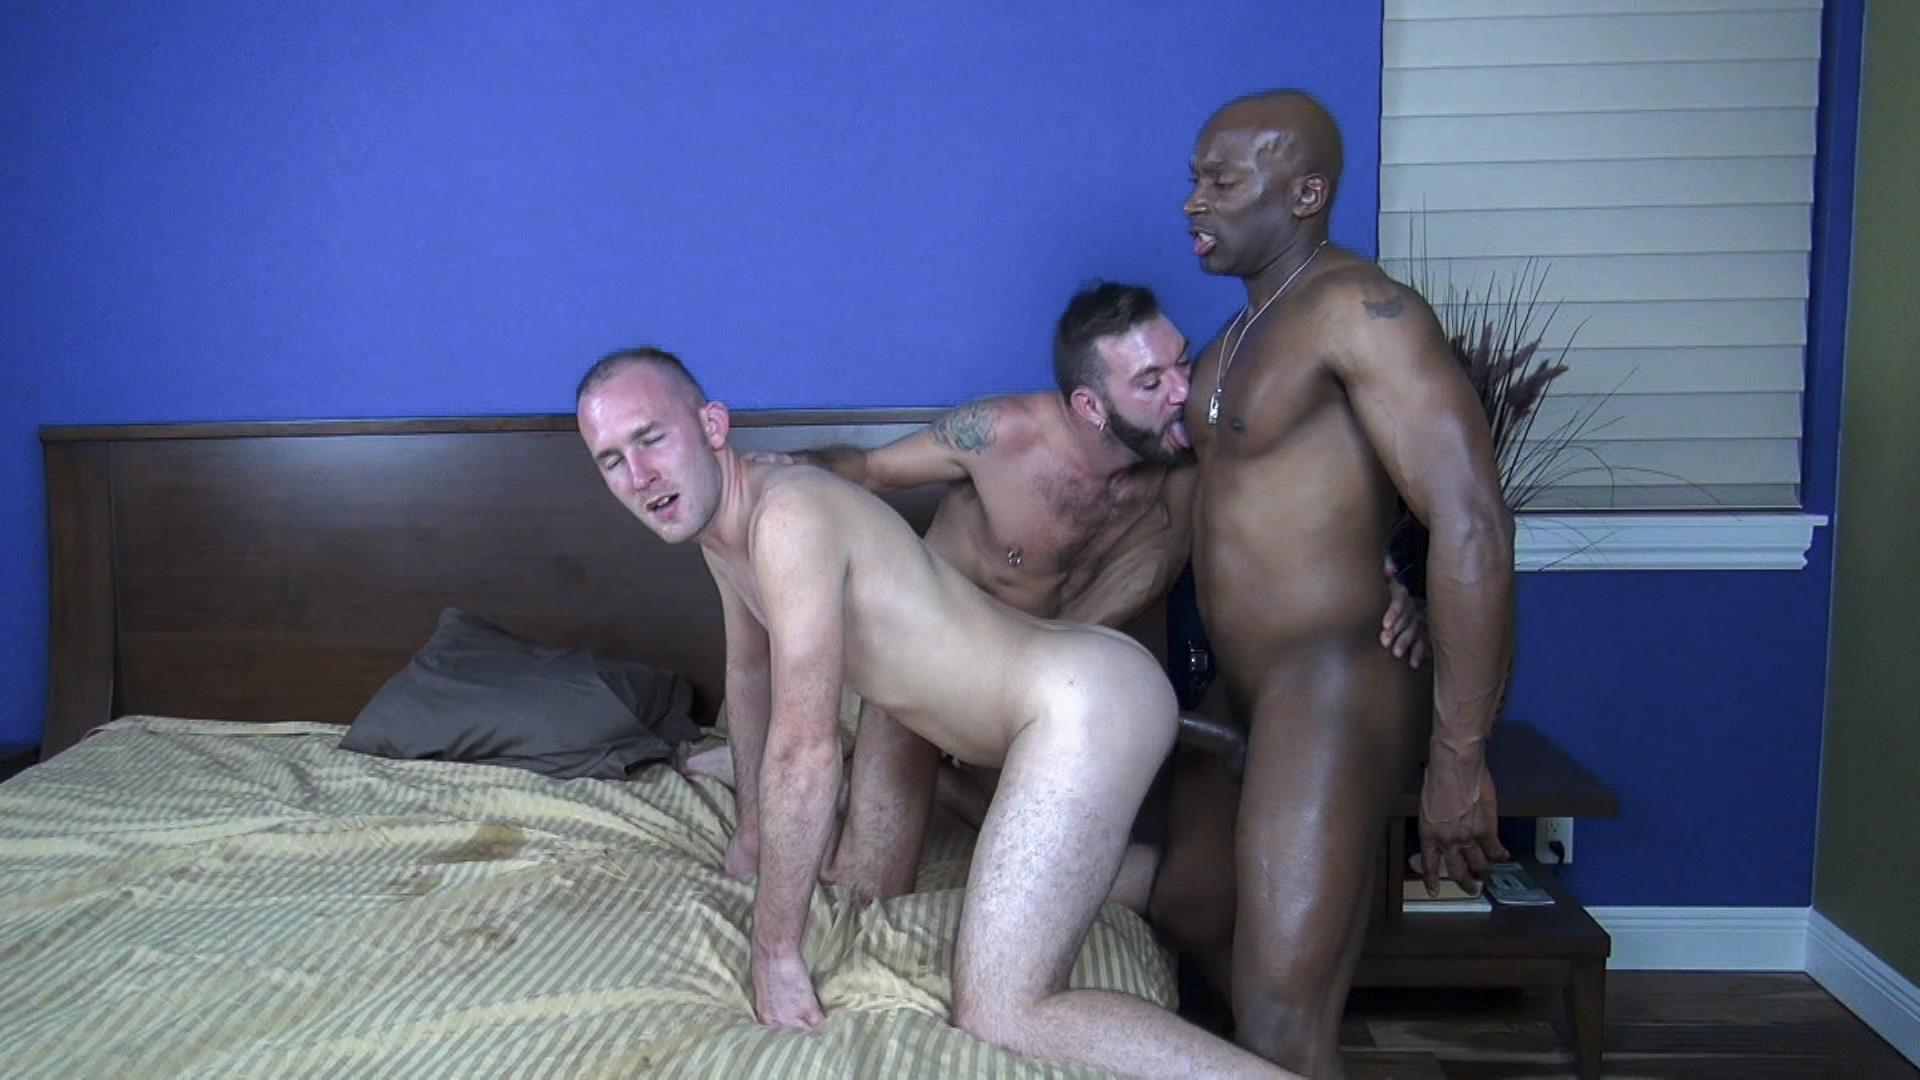 Raw-Fuck-Club-Ethan-Palmer-and-Champ-Robinson-and-Trit-Tyler-Bareback-Interrical-Amateur-Gay-Porn-02 Champ Robinson Shares His Big Black Dick With 2 White Guys